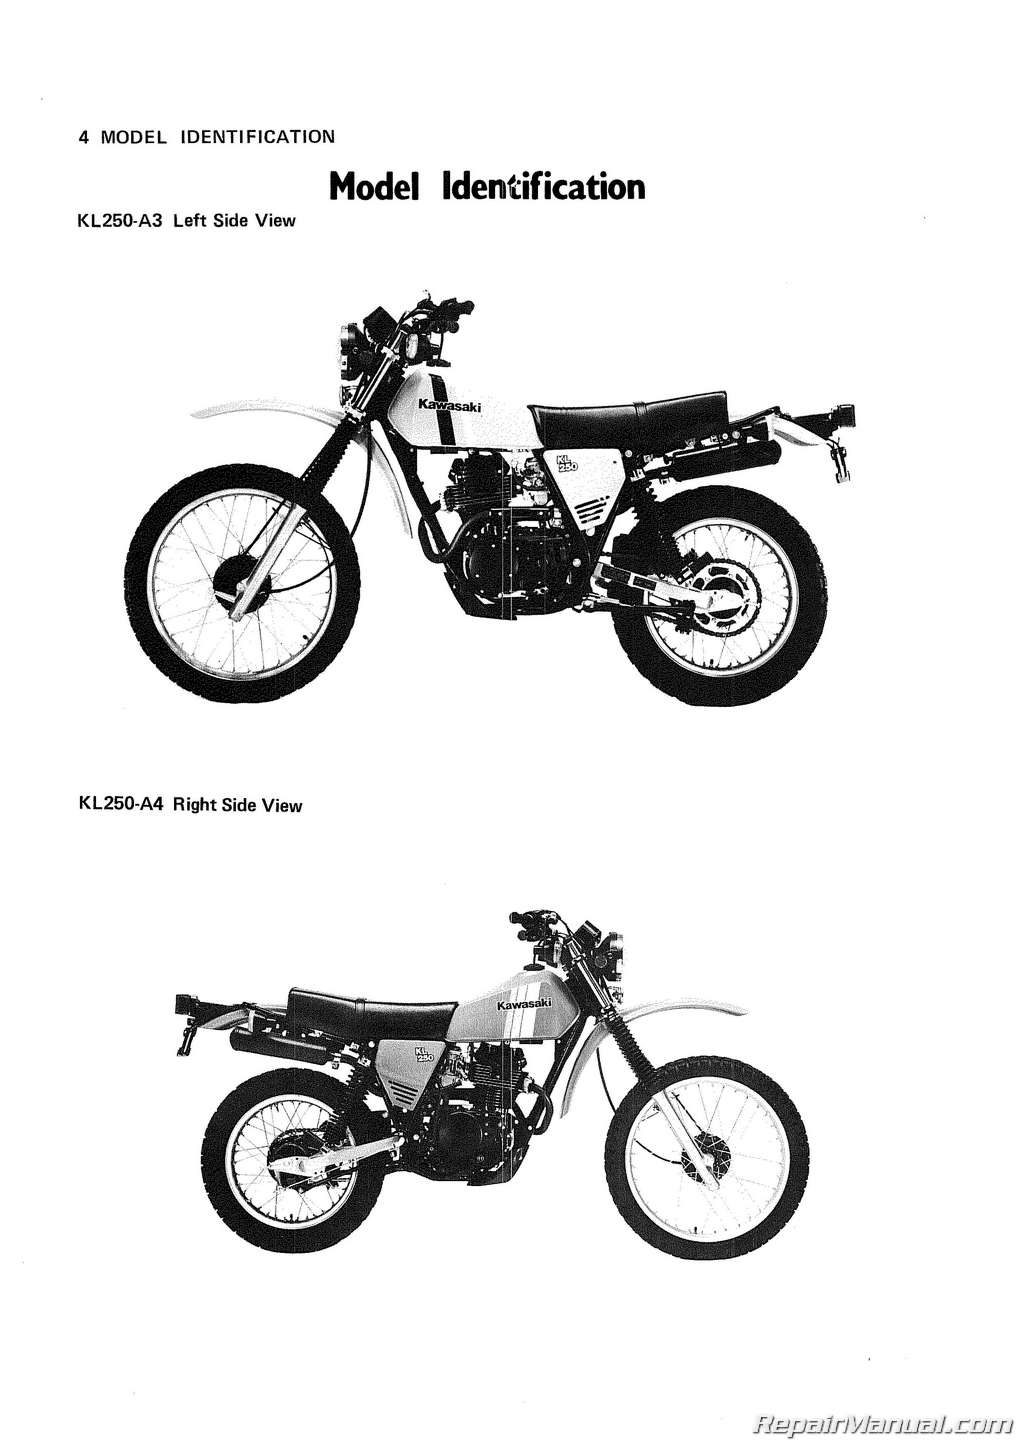 1980-1983 Kawasaki KL250 Motorcycle Service Manual